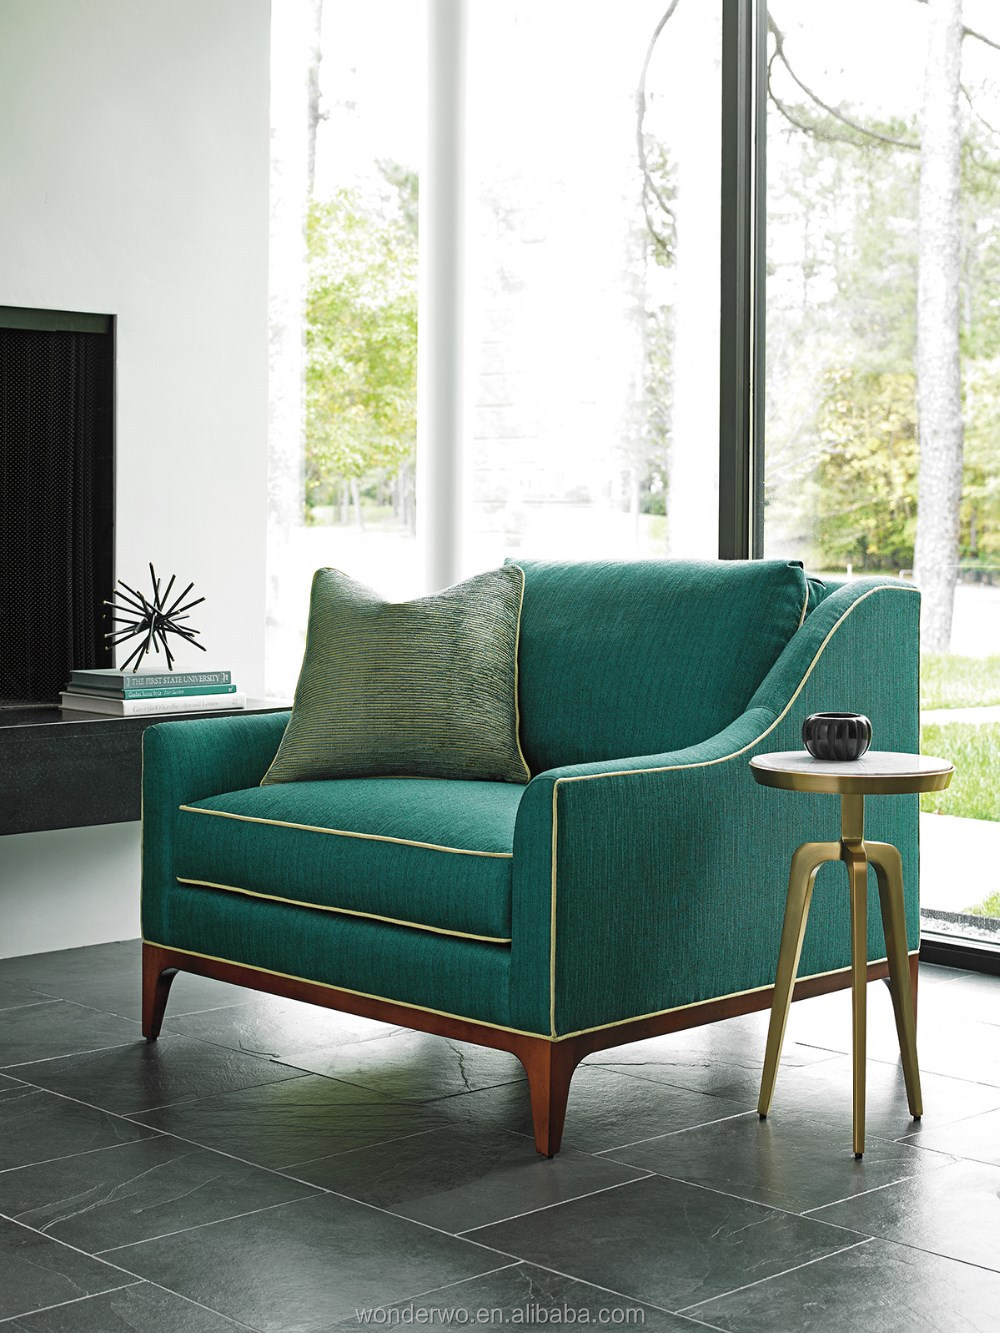 living room stools. Greenstone Chair living room chair single sofa with ultra down seat cushion